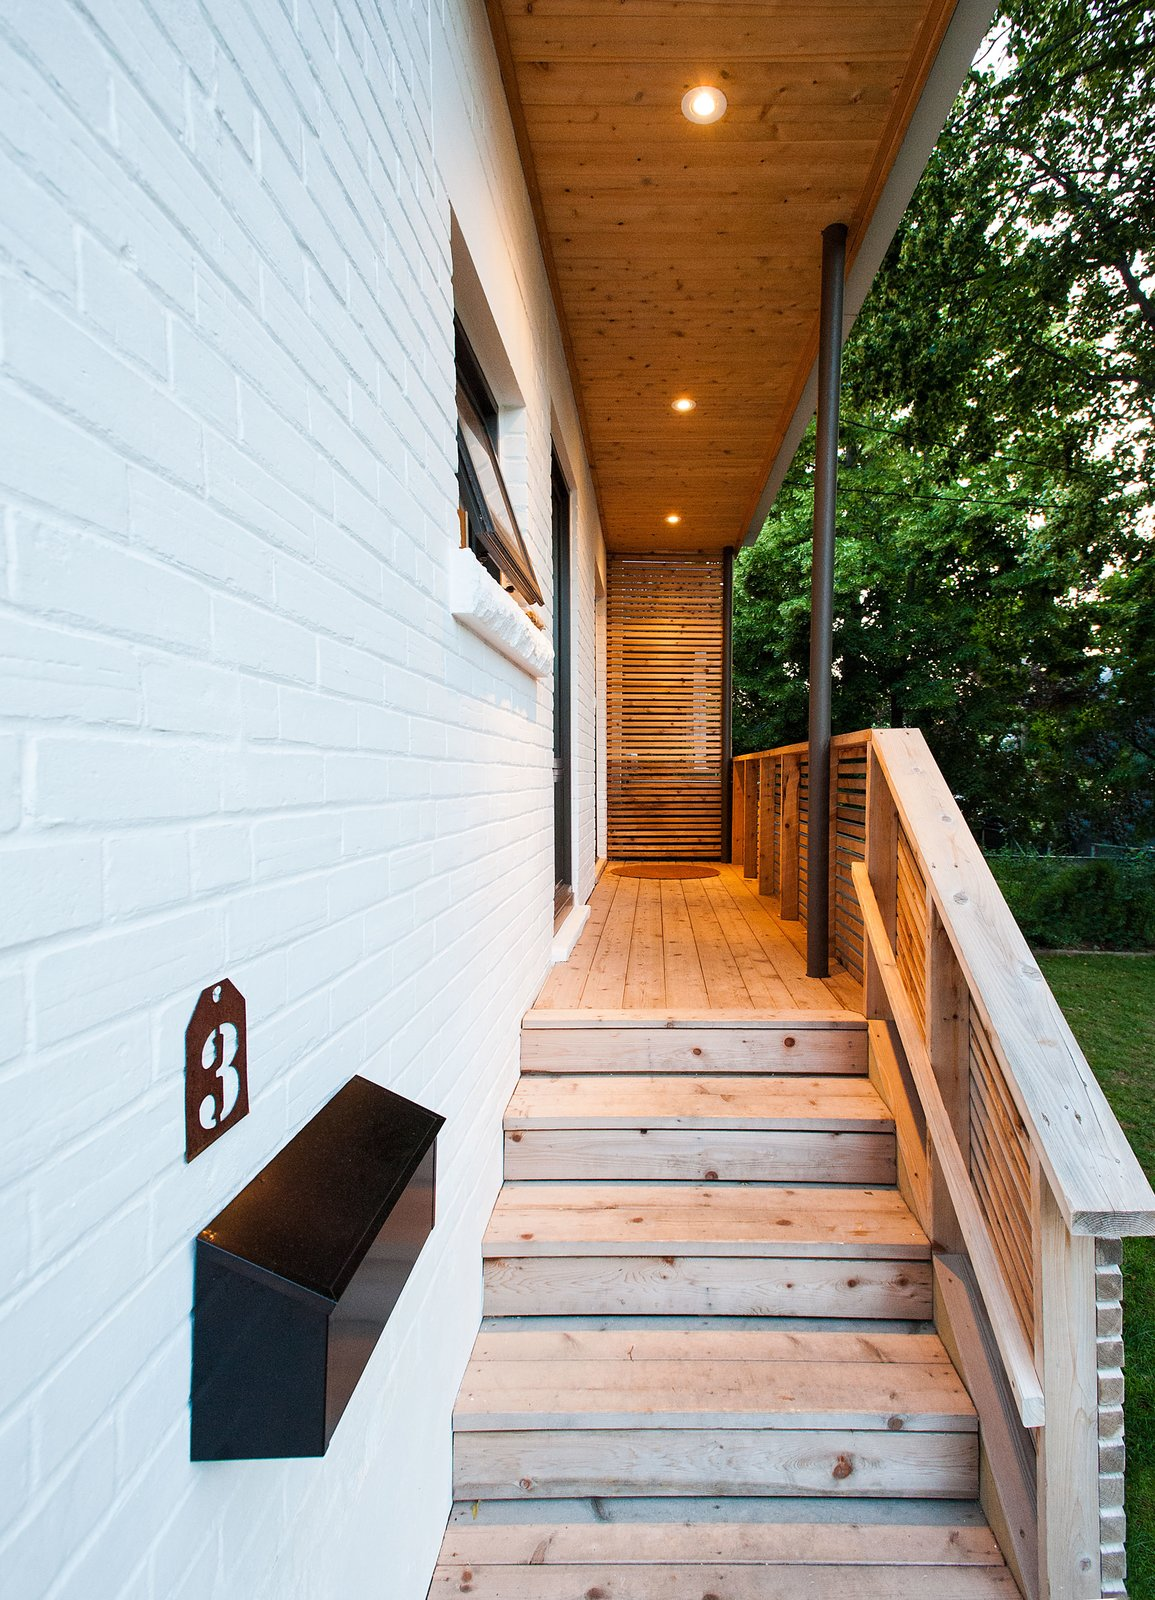 Outdoor, Horizontal Fences, Wall, Wood Fences, Wall, Front Yard, Wood Patio, Porch, Deck, and Small Patio, Porch, Deck Our House - Front Porch  Our House by Solares Architecture